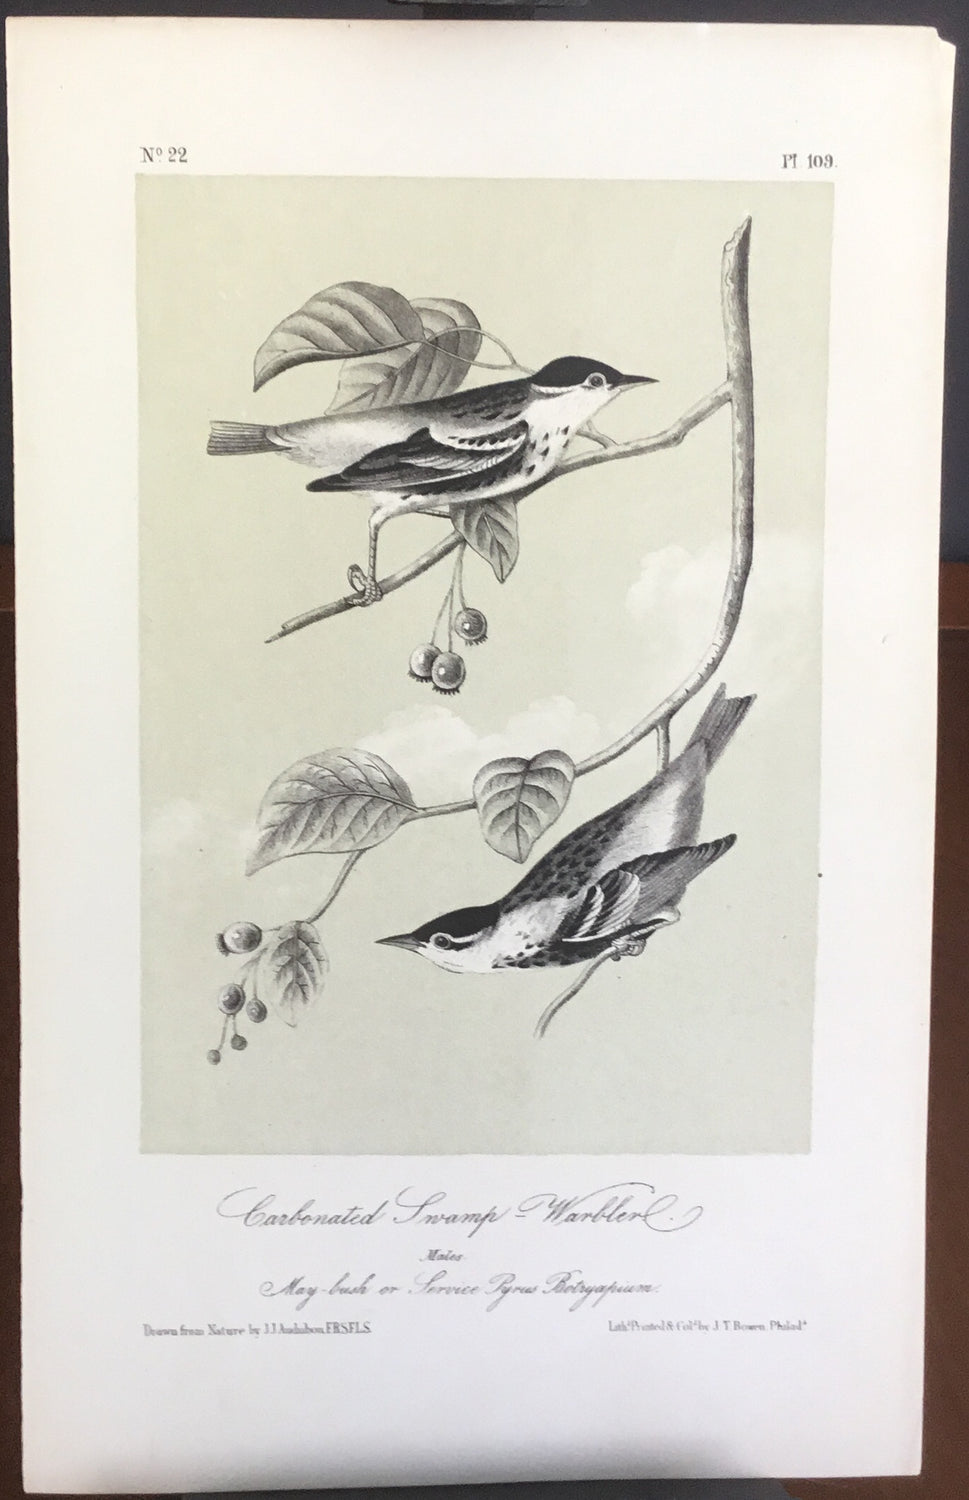 Audubon Octavo Carbonated Swamp Warbler, plate 109, uncolored test sheet, darker tint, 7 x 11